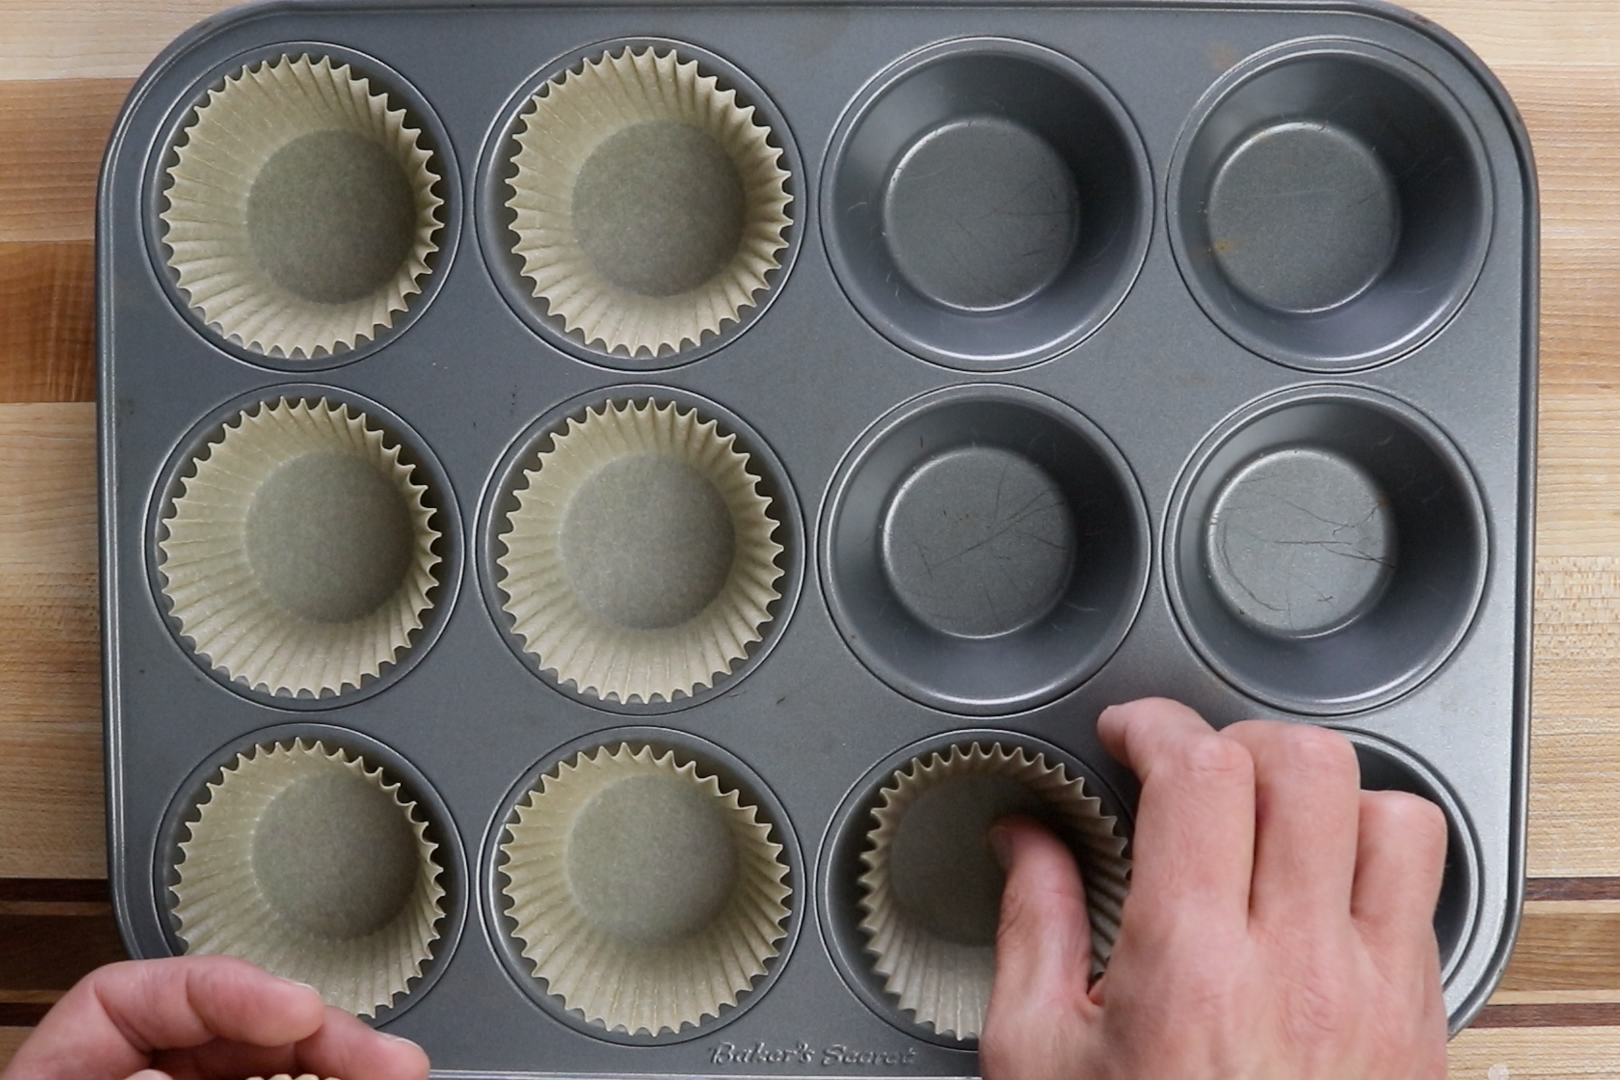 1. Preheat oven to 400 degrees F and prepare 12 muffin cups with paper liners. -